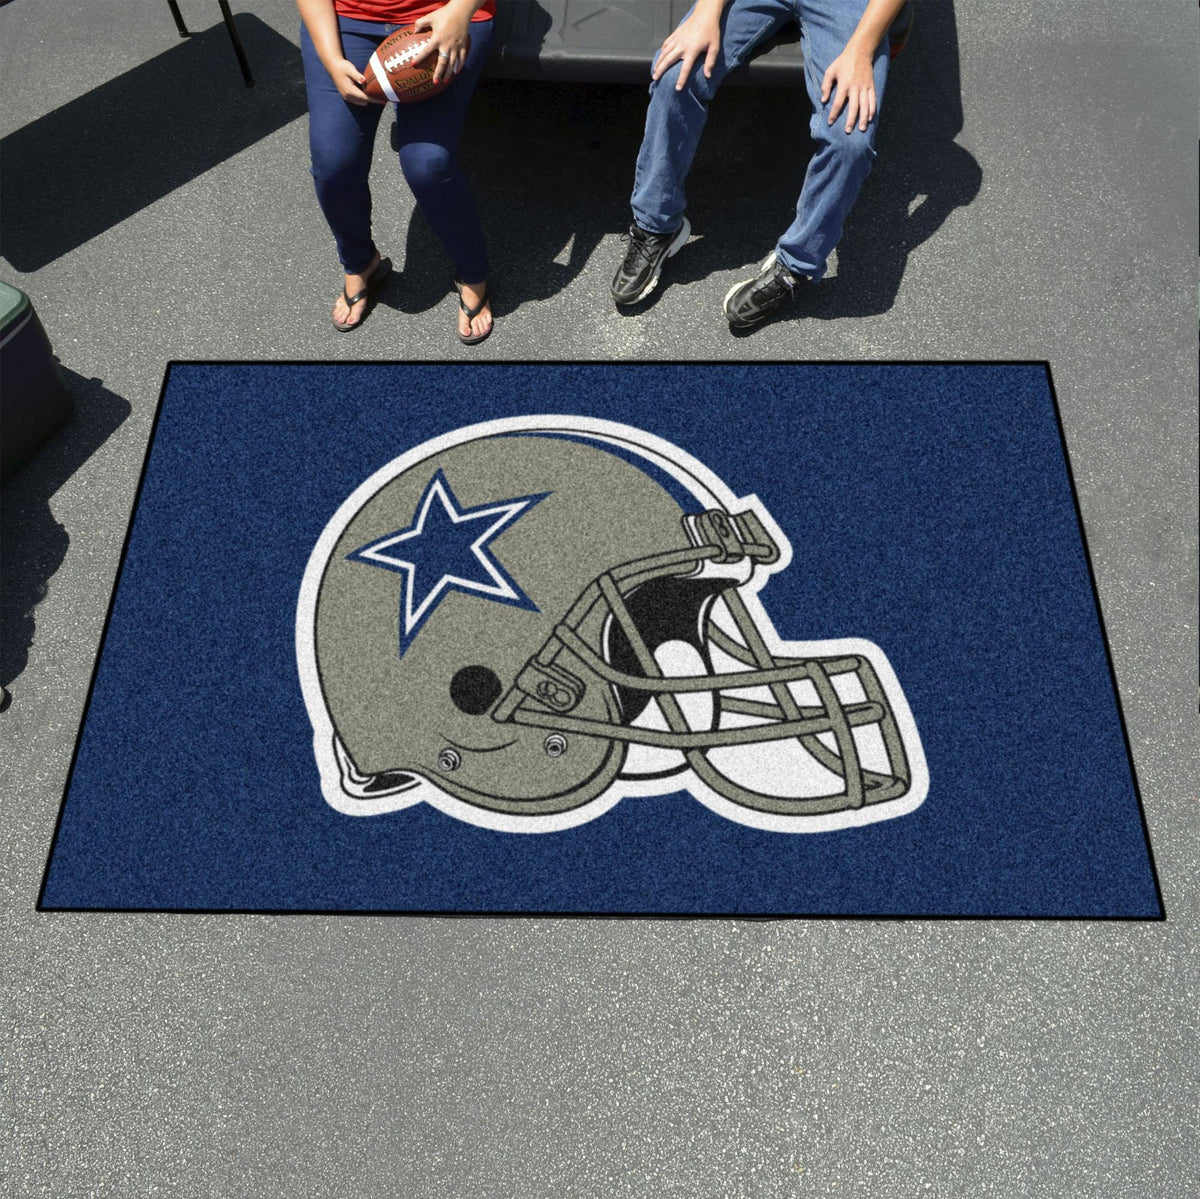 "NFL - Ulti-Mat, 59.5"" x 94.5"" NFL Mats, Rectangular Mats, Ulti-Mat, NFL, Home Fan Mats Dallas Cowboys"